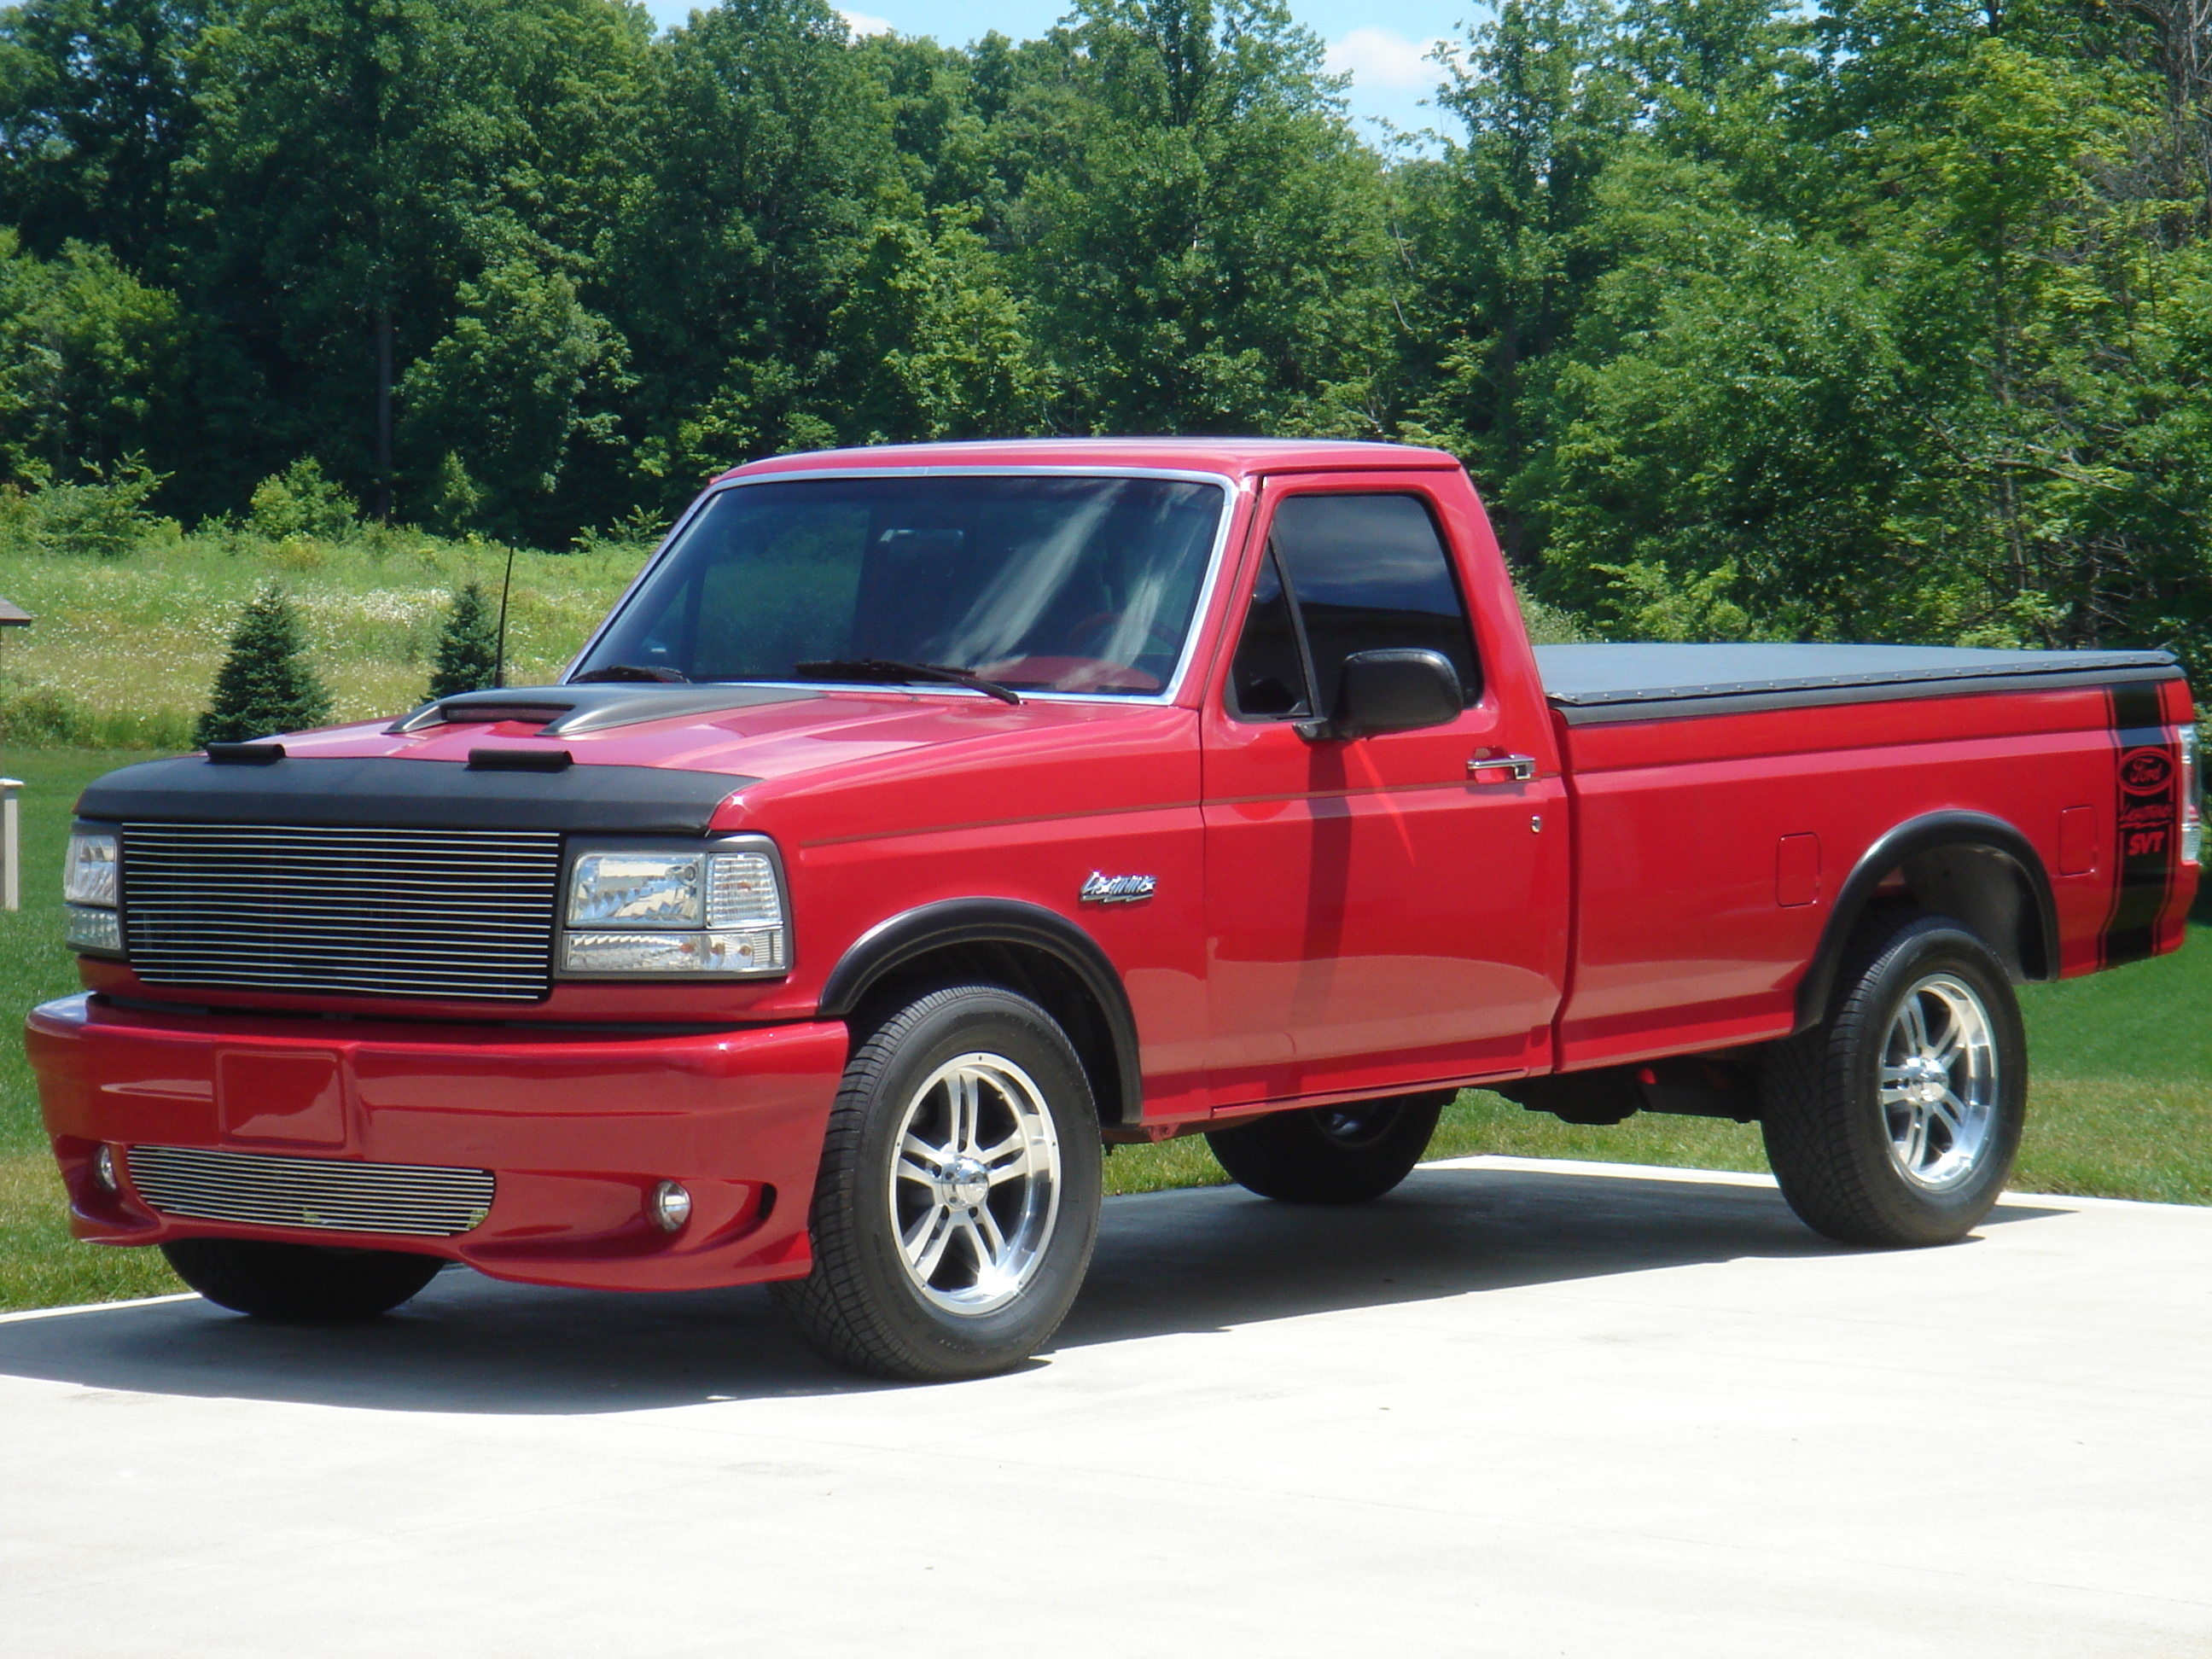 StalkerVette's 1994 Ford F150 Regular Cab